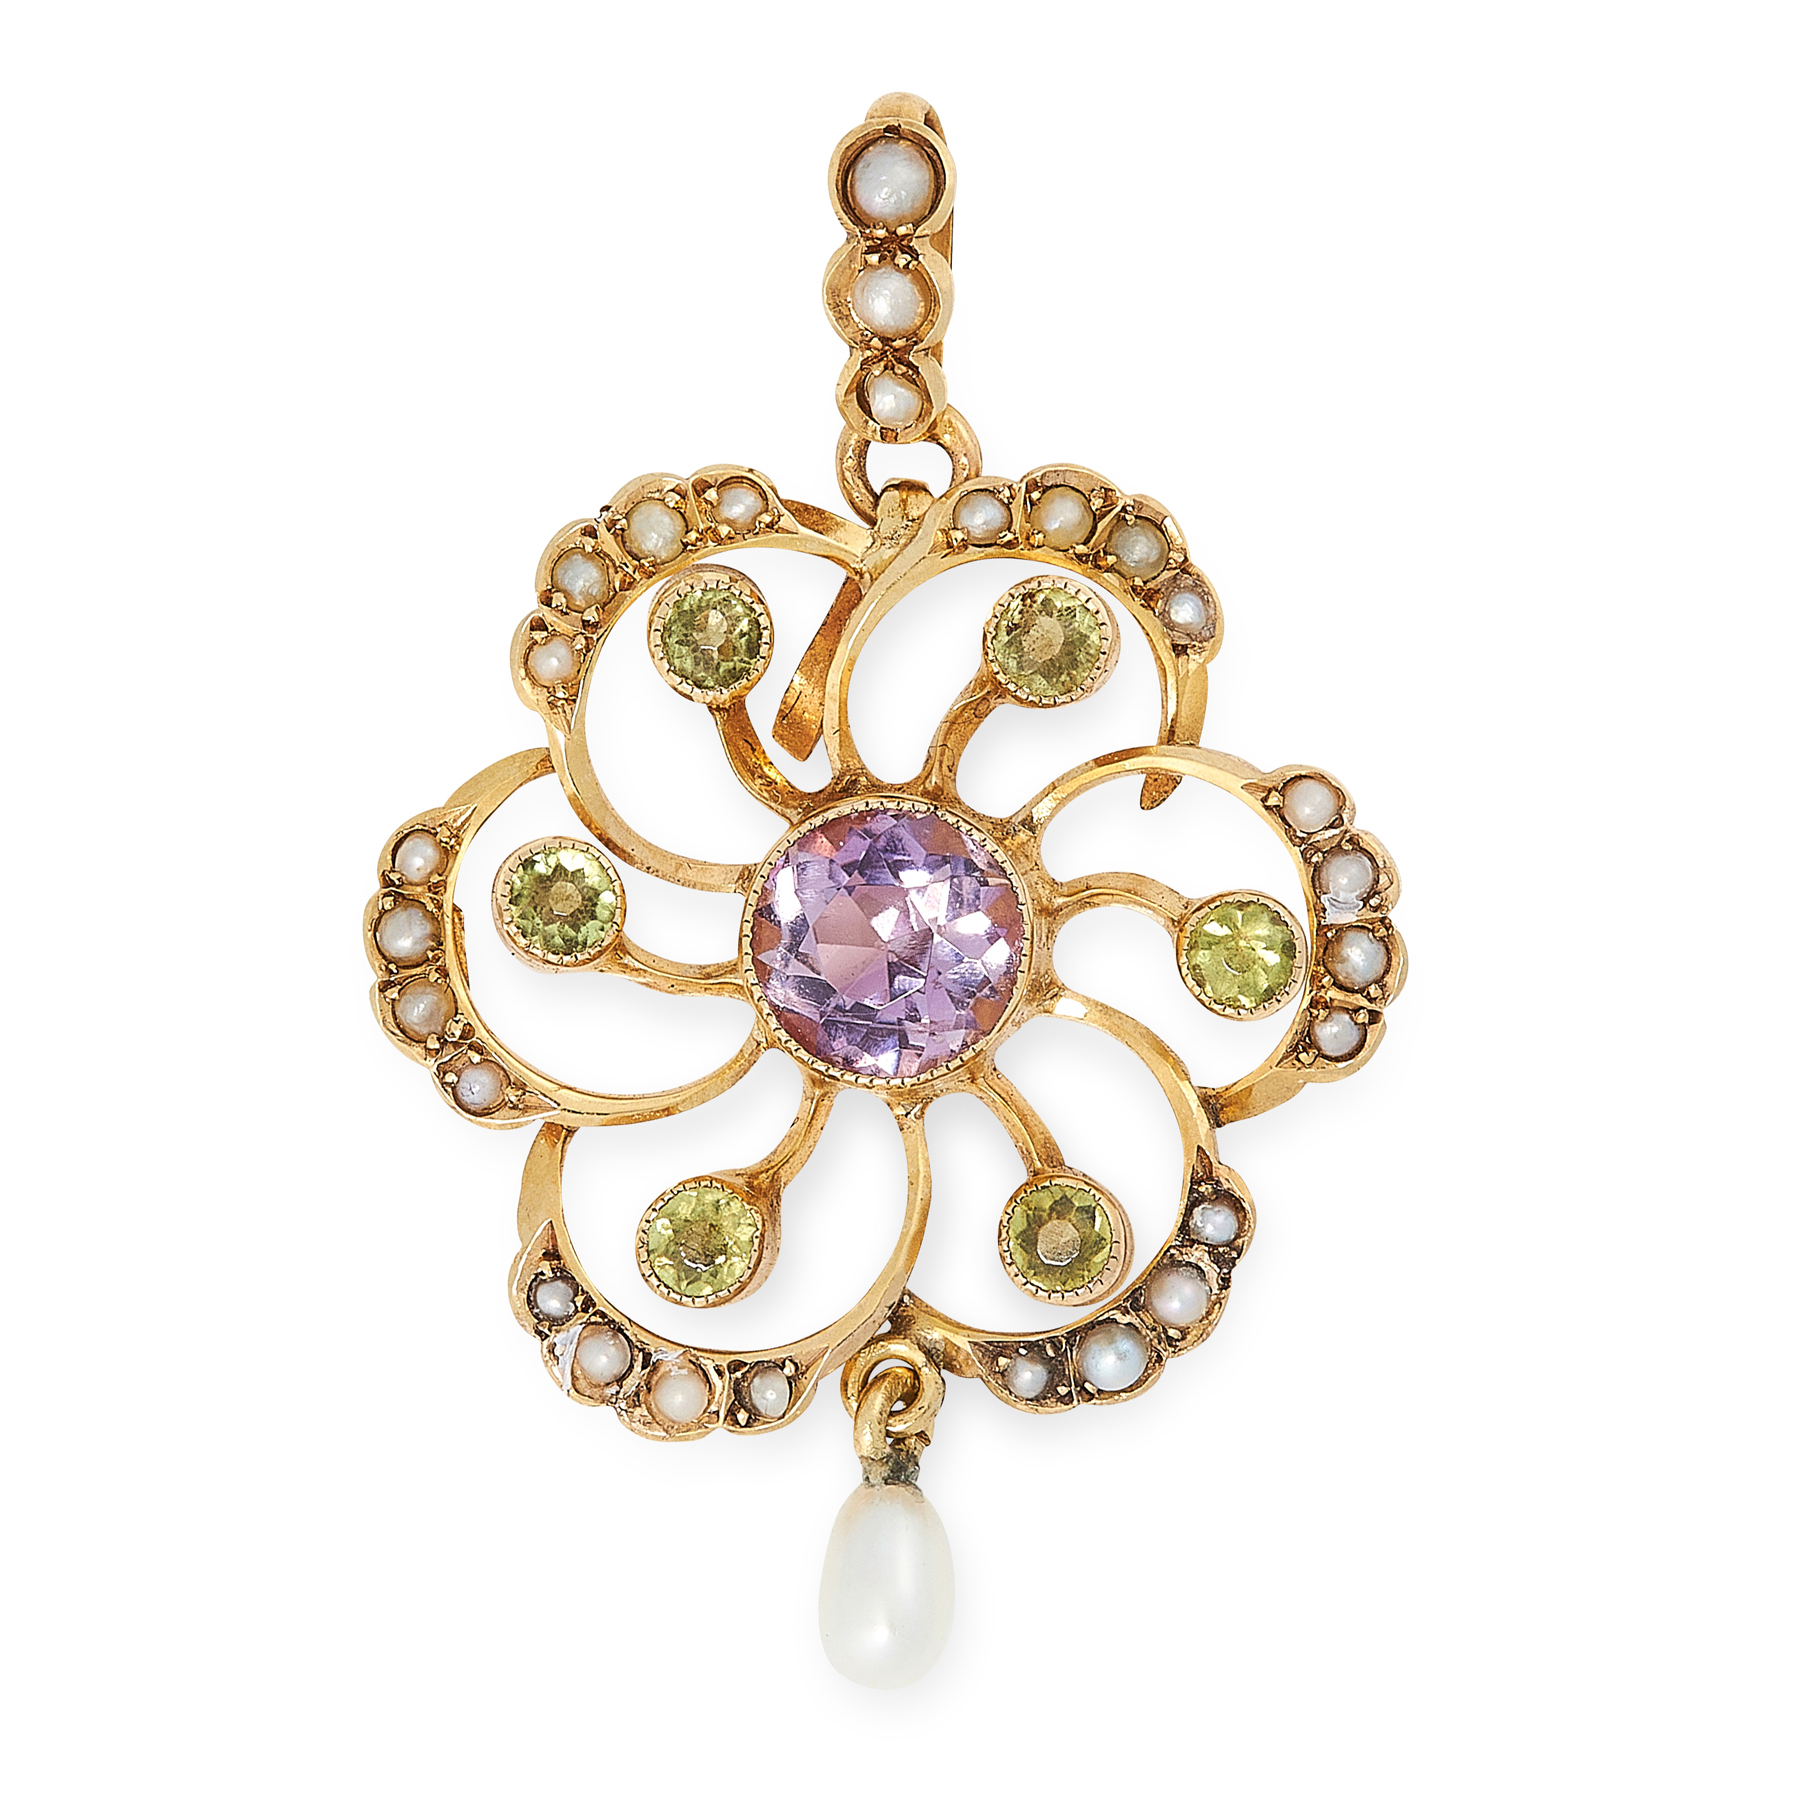 AN ANTIQUE AMETHYST, PERIDOT AND PEARL SUFFRAGETTE PENDANT in 9ct yellow gold, set with a round